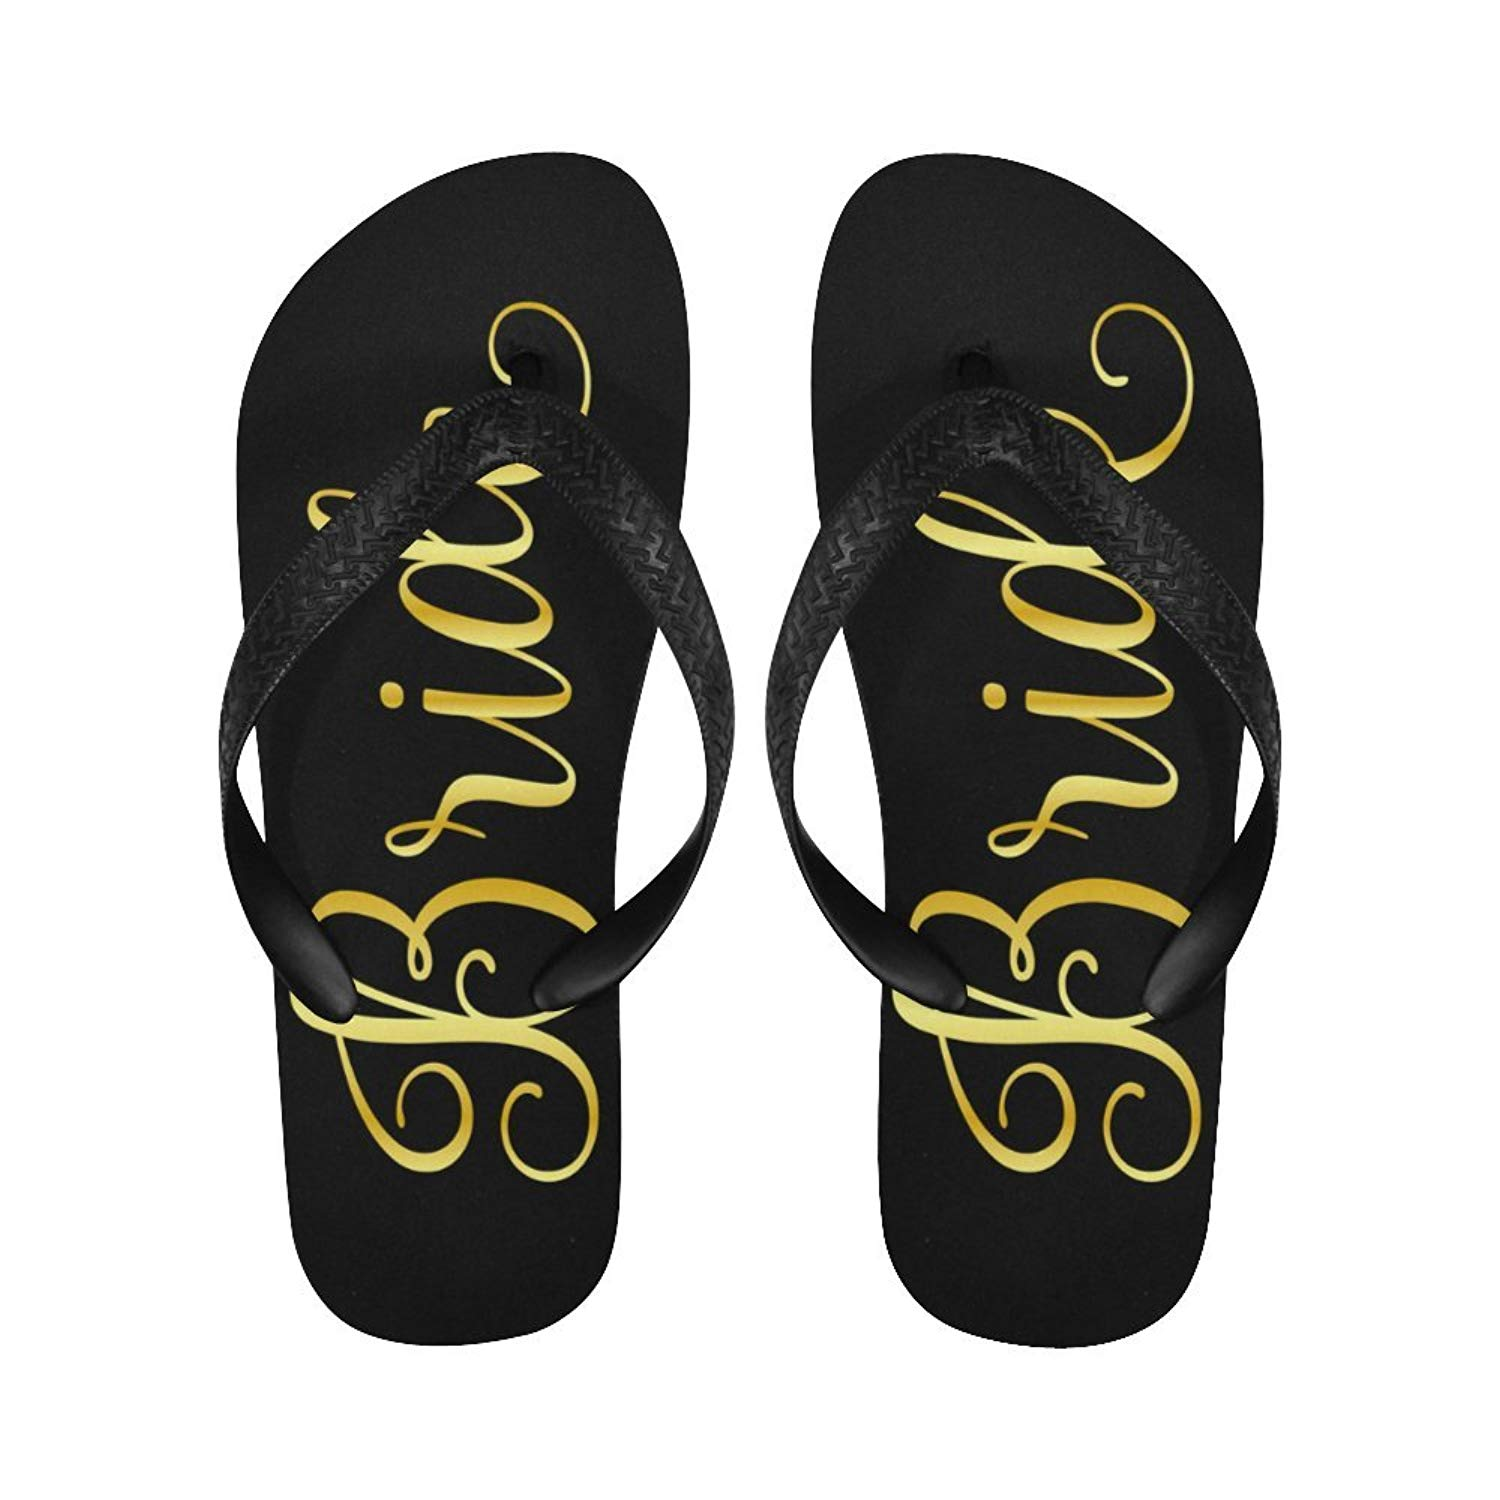 47cb5b8e4 Get Quotations · InterestPrint Flip Flops Sandal